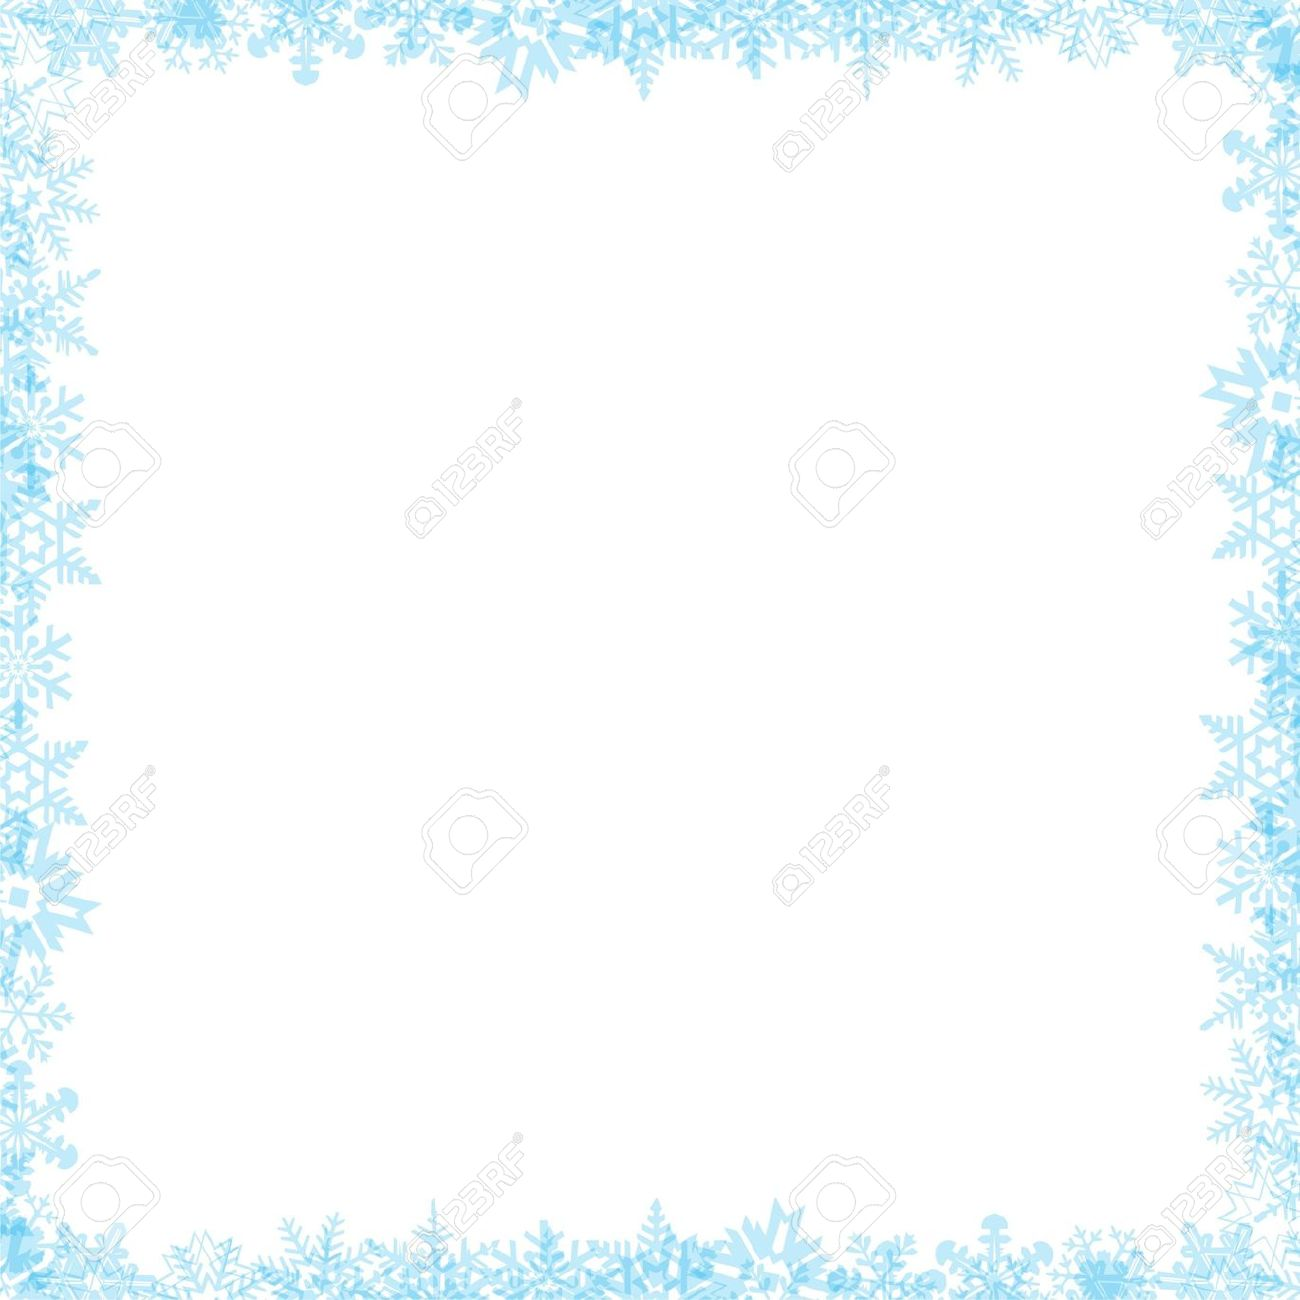 image library download Borders station . Snow border clipart